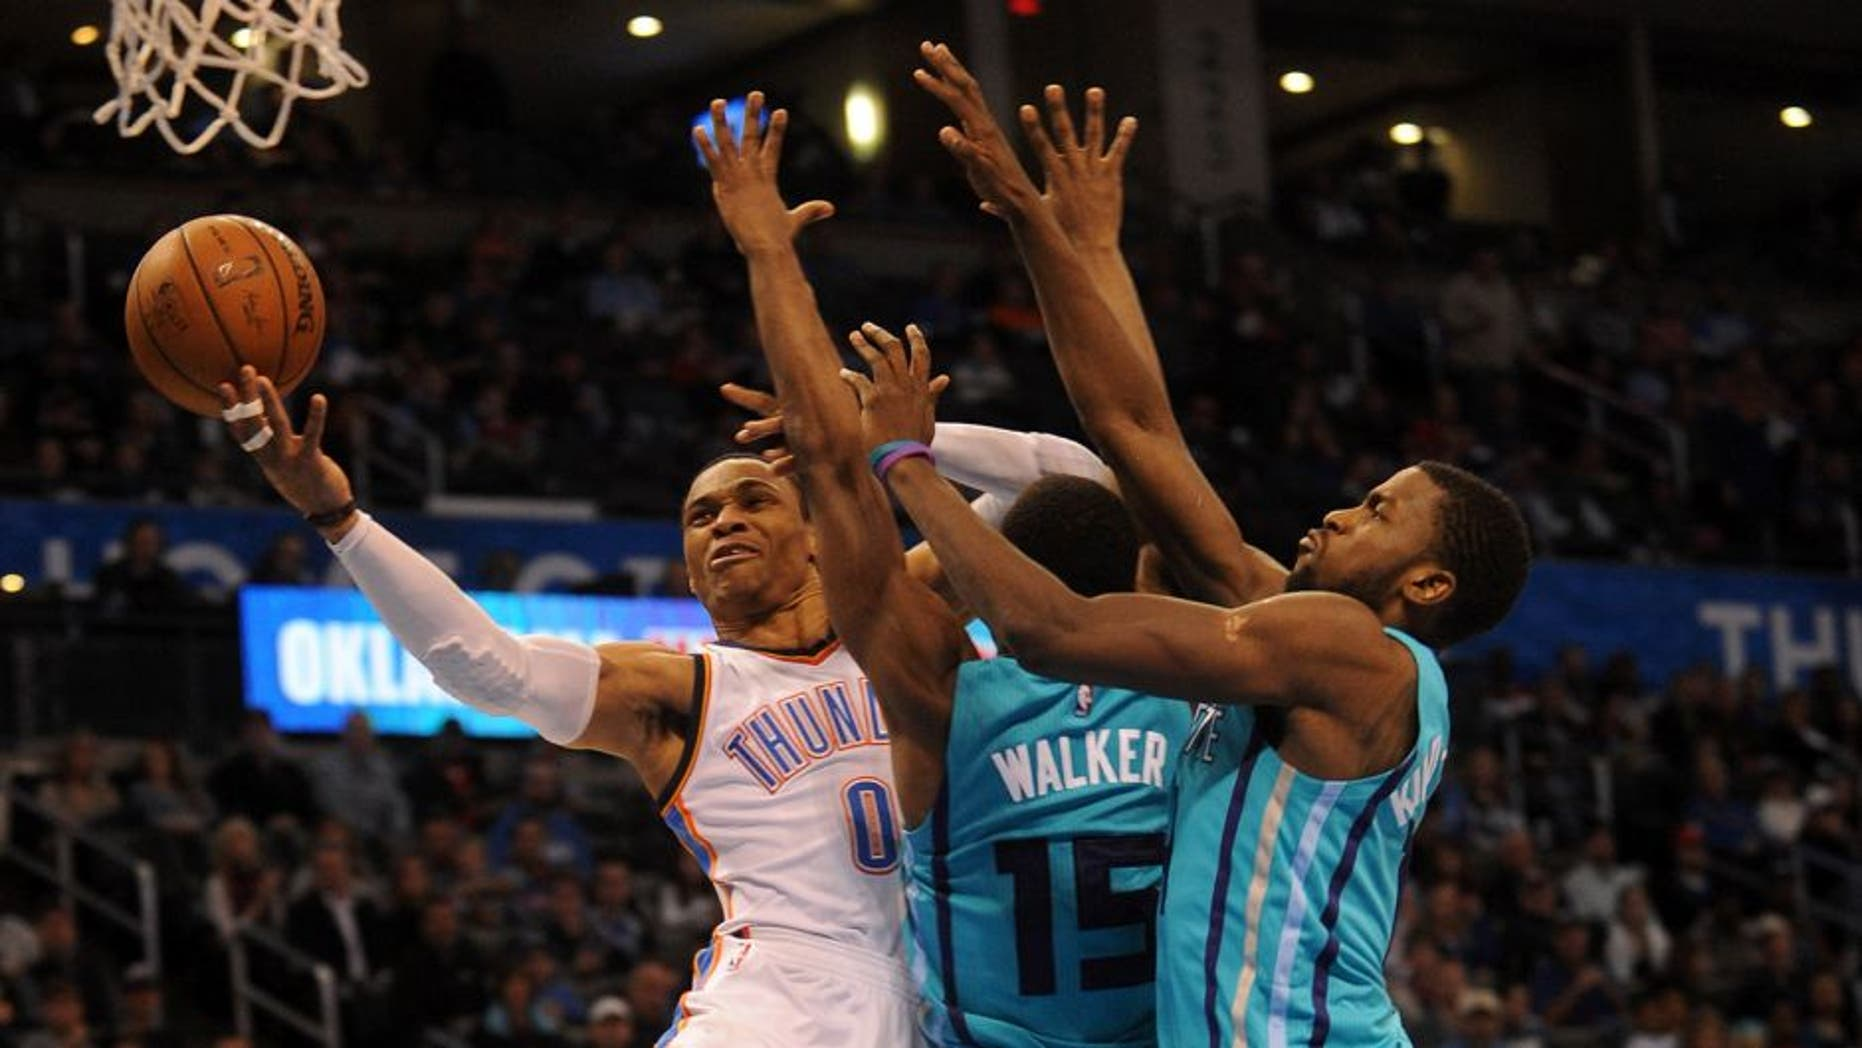 Dec 26, 2014; Oklahoma City, OK, USA; Oklahoma City Thunder guard Russell Westbrook (0) attempts a shot against Charlotte Hornets forward Michael Kidd-Gilchrist (14) and Hornets guard Kemba Walker (15) during the third quarter at Chesapeake Energy Arena. Mandatory Credit: Mark D. Smith-USA TODAY Sports